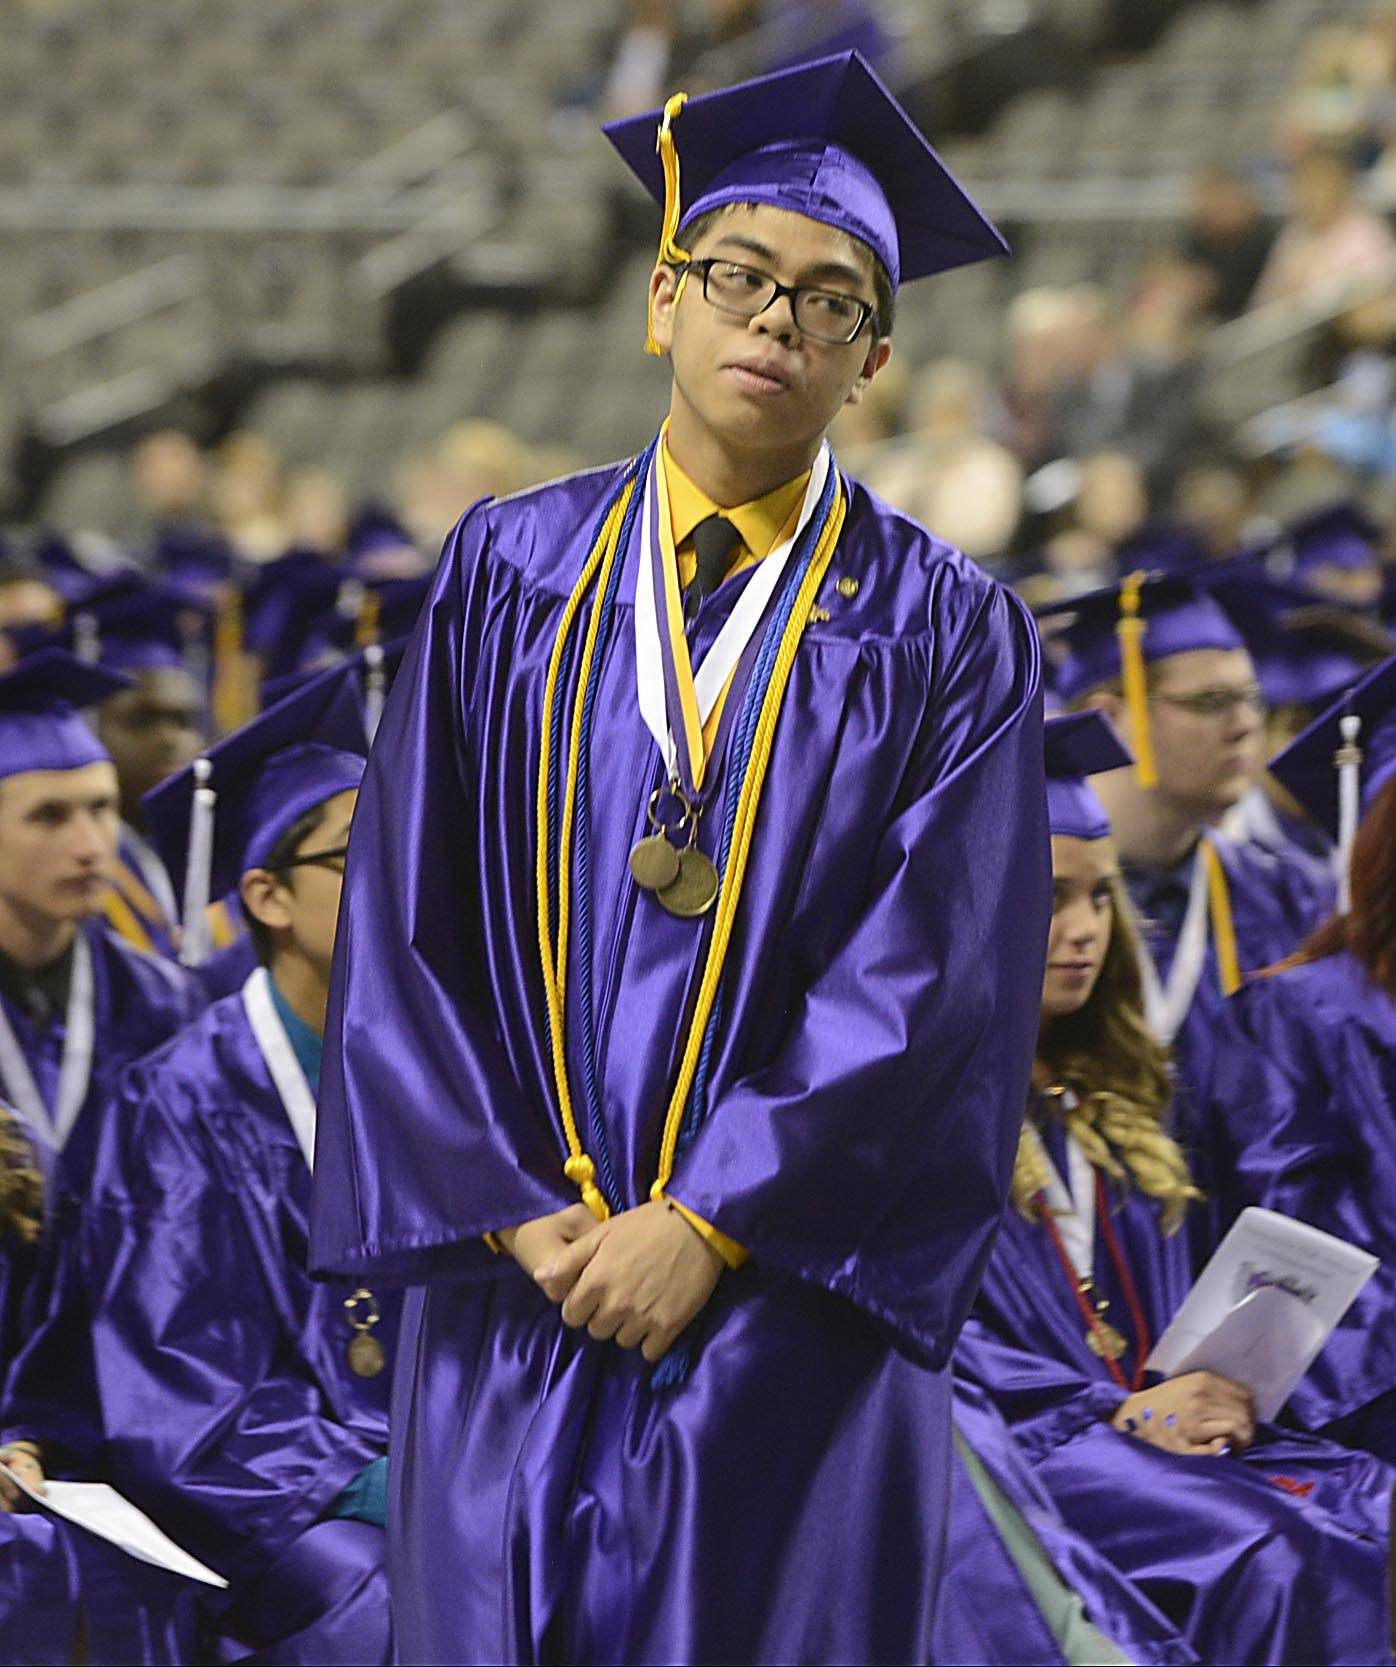 Images from the Hampshire High School graduation Saturday, May 17th.